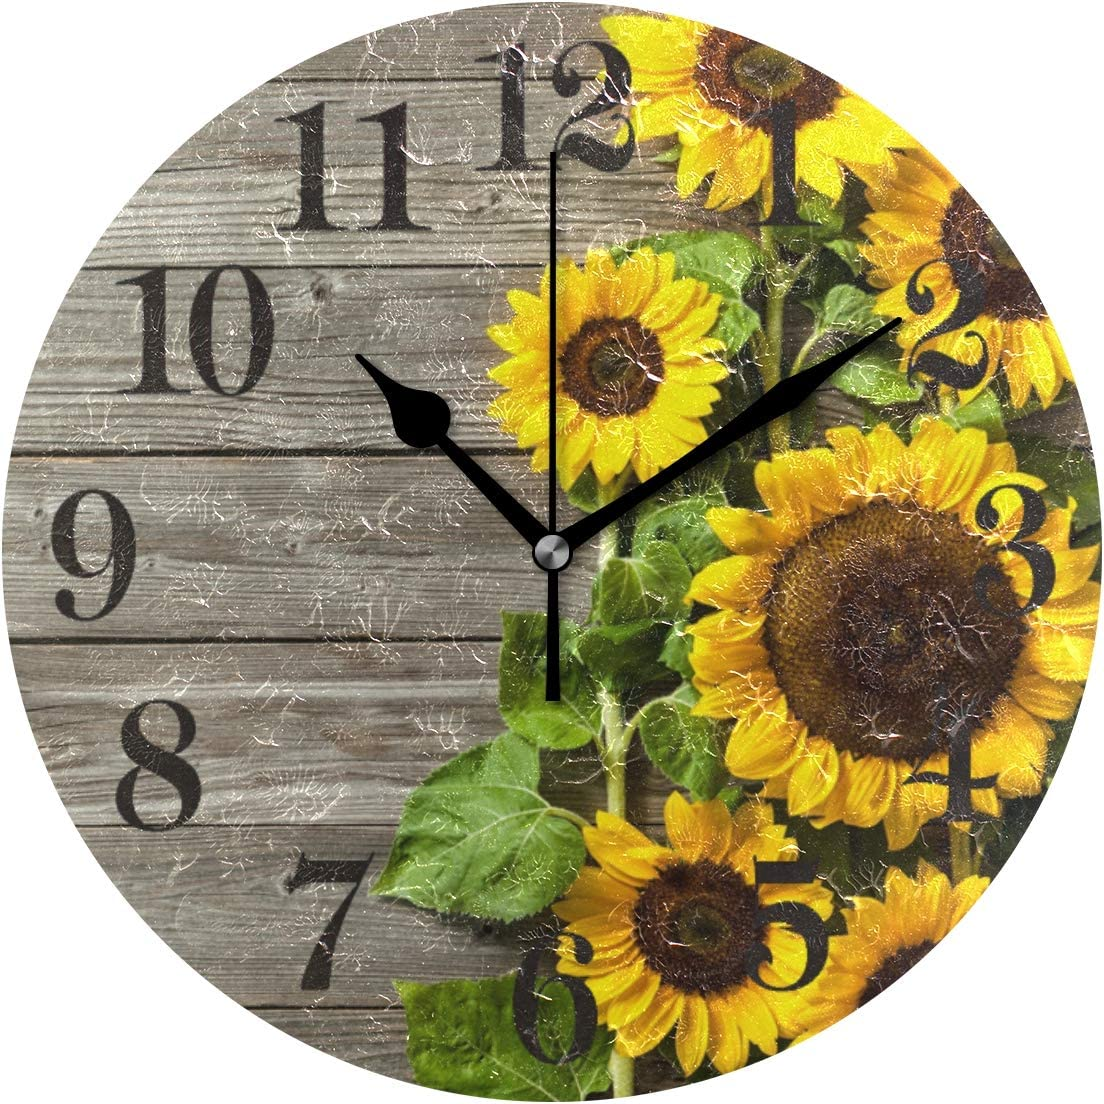 WIHVE Rustic 10 Inch Round Wall Clock Sunflowers Wooden Clock Wall Decor for The Kitchen Living Room Bedroom Office